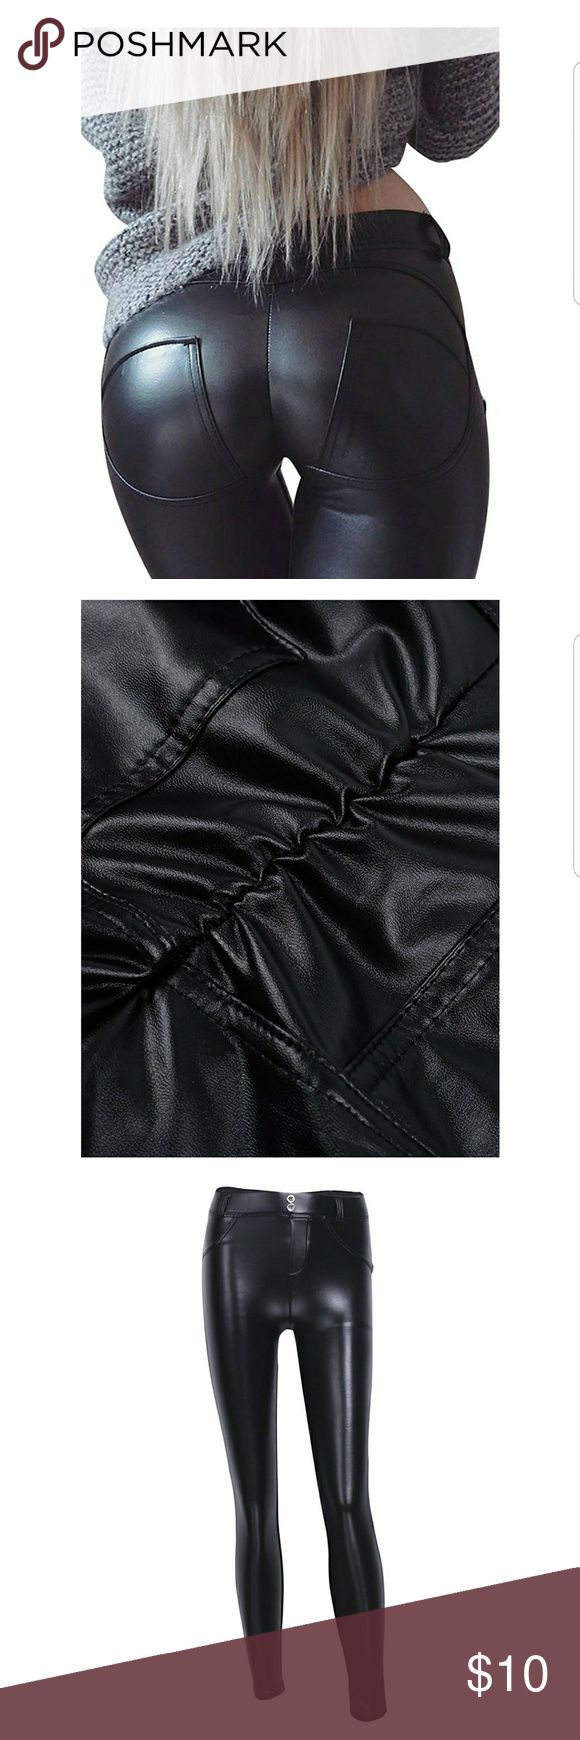 """NWOT SEXY PU leather elastic skinny push up pants Size 4/6 runs small  Waist 26-27.2"""" Hip 35.4-37"""" Front crotch 9.8"""" Back crotch 11-14.2"""" Length 37"""" Medium thickness Soft & comfortable Stretchy material Back of hip has elasticity to show off curves Easy match with sweater & all tops & suitable for any occasion. Cold hand wash and hang to air dry. Do not bleach/iron or put in machine dryer. Pants Skinny"""